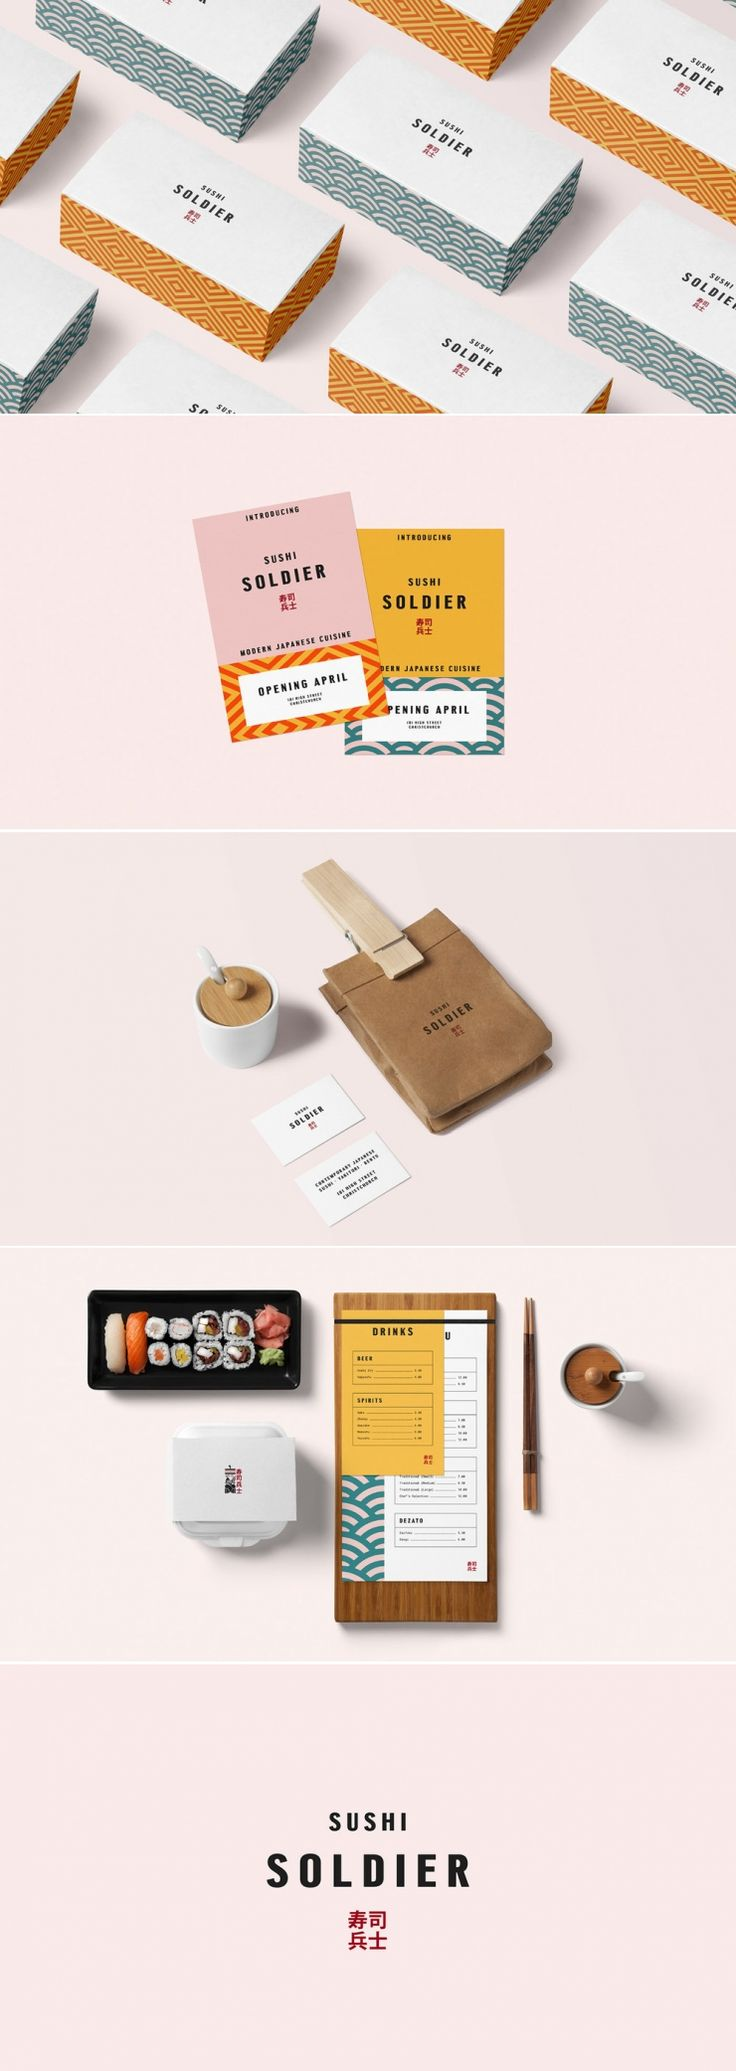 Sushi Soldier's Geometric Packaging — The Dieline | Packaging & Branding Design & Innovation News